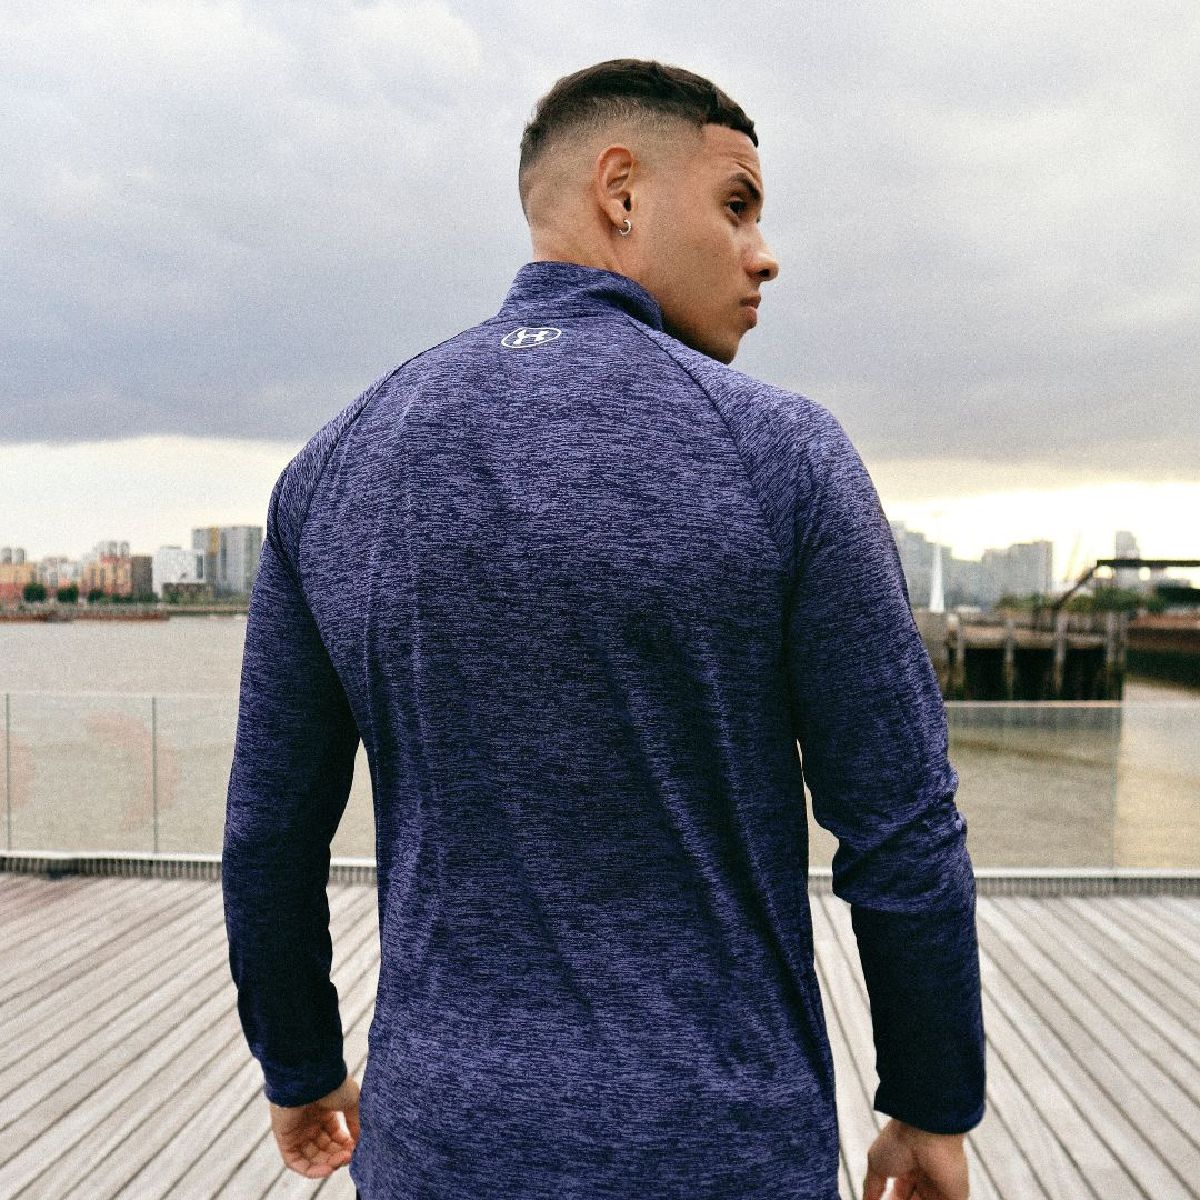 Gotta look the part when breaking your personal best!  The @UnderArmourTech Half Zip is the go to workout piece 📲 https://t.co/PhpM2q8yNz https://t.co/szEClpSCZV